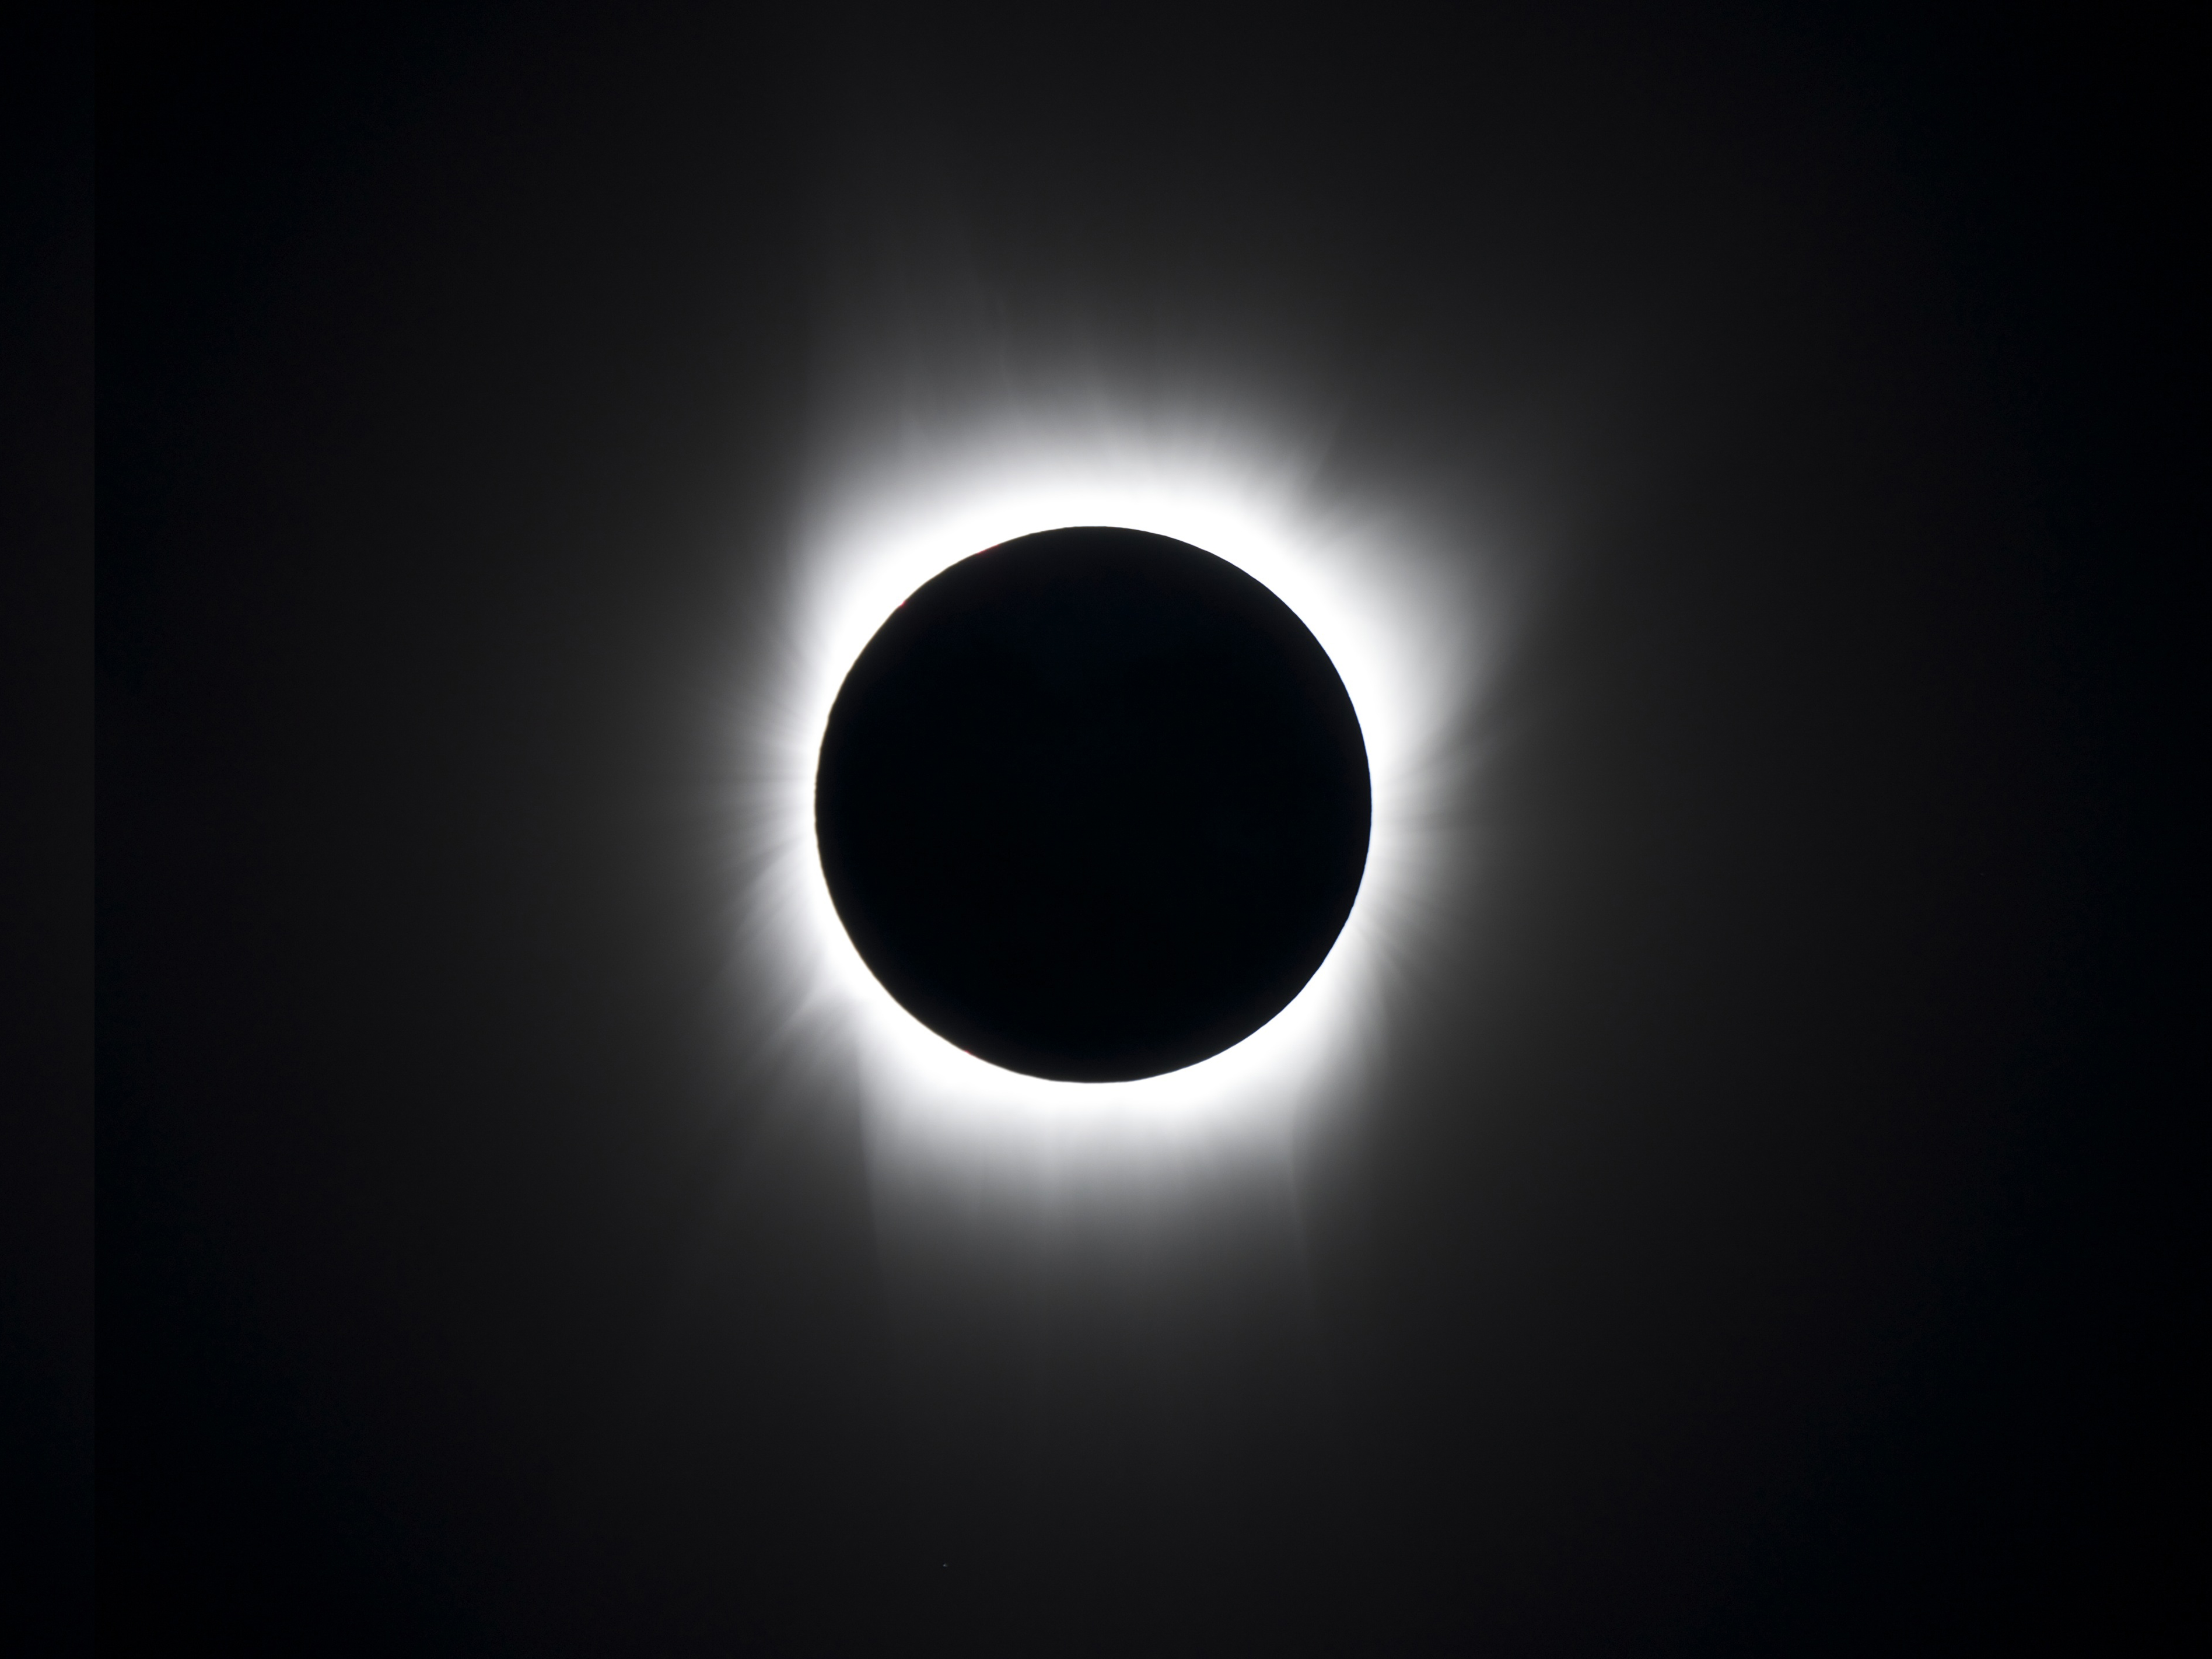 Eclipse - 10 photo